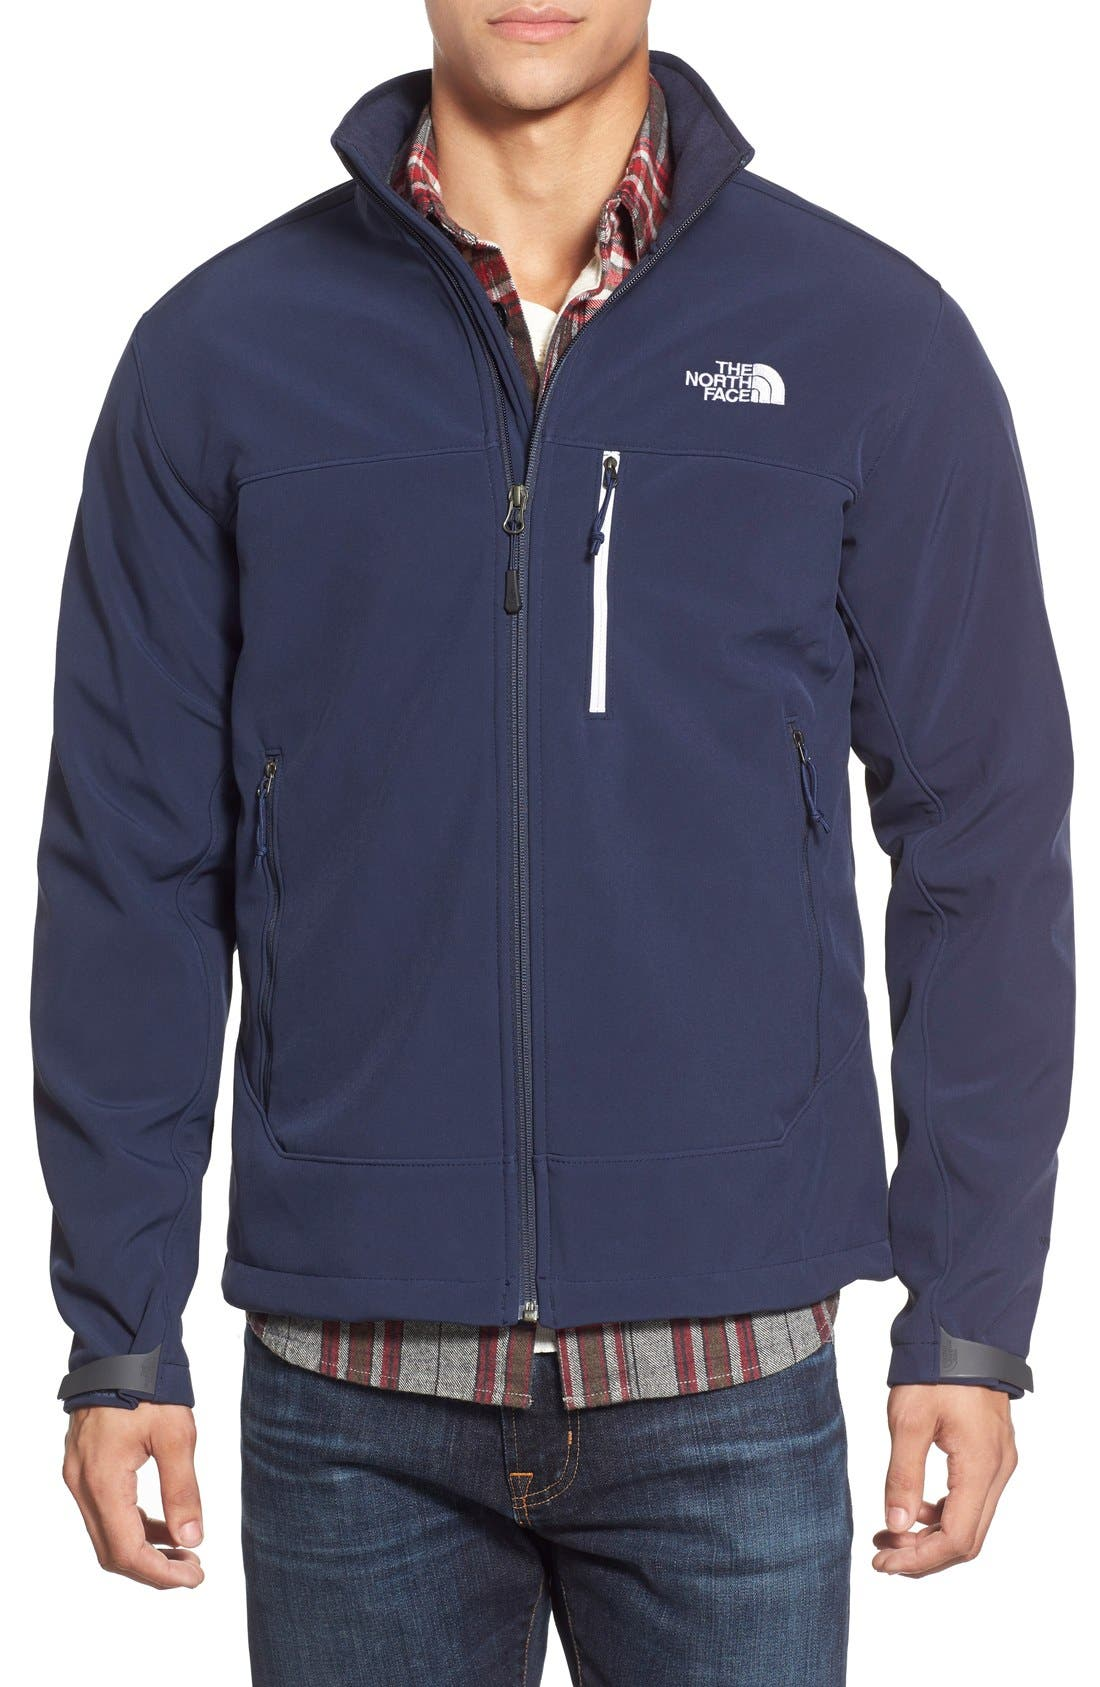 Alternate Image 1 Selected - The North Face 'Apex Bionic' ClimateBlock™ Windproof & Water Resistant Softshell Jacket